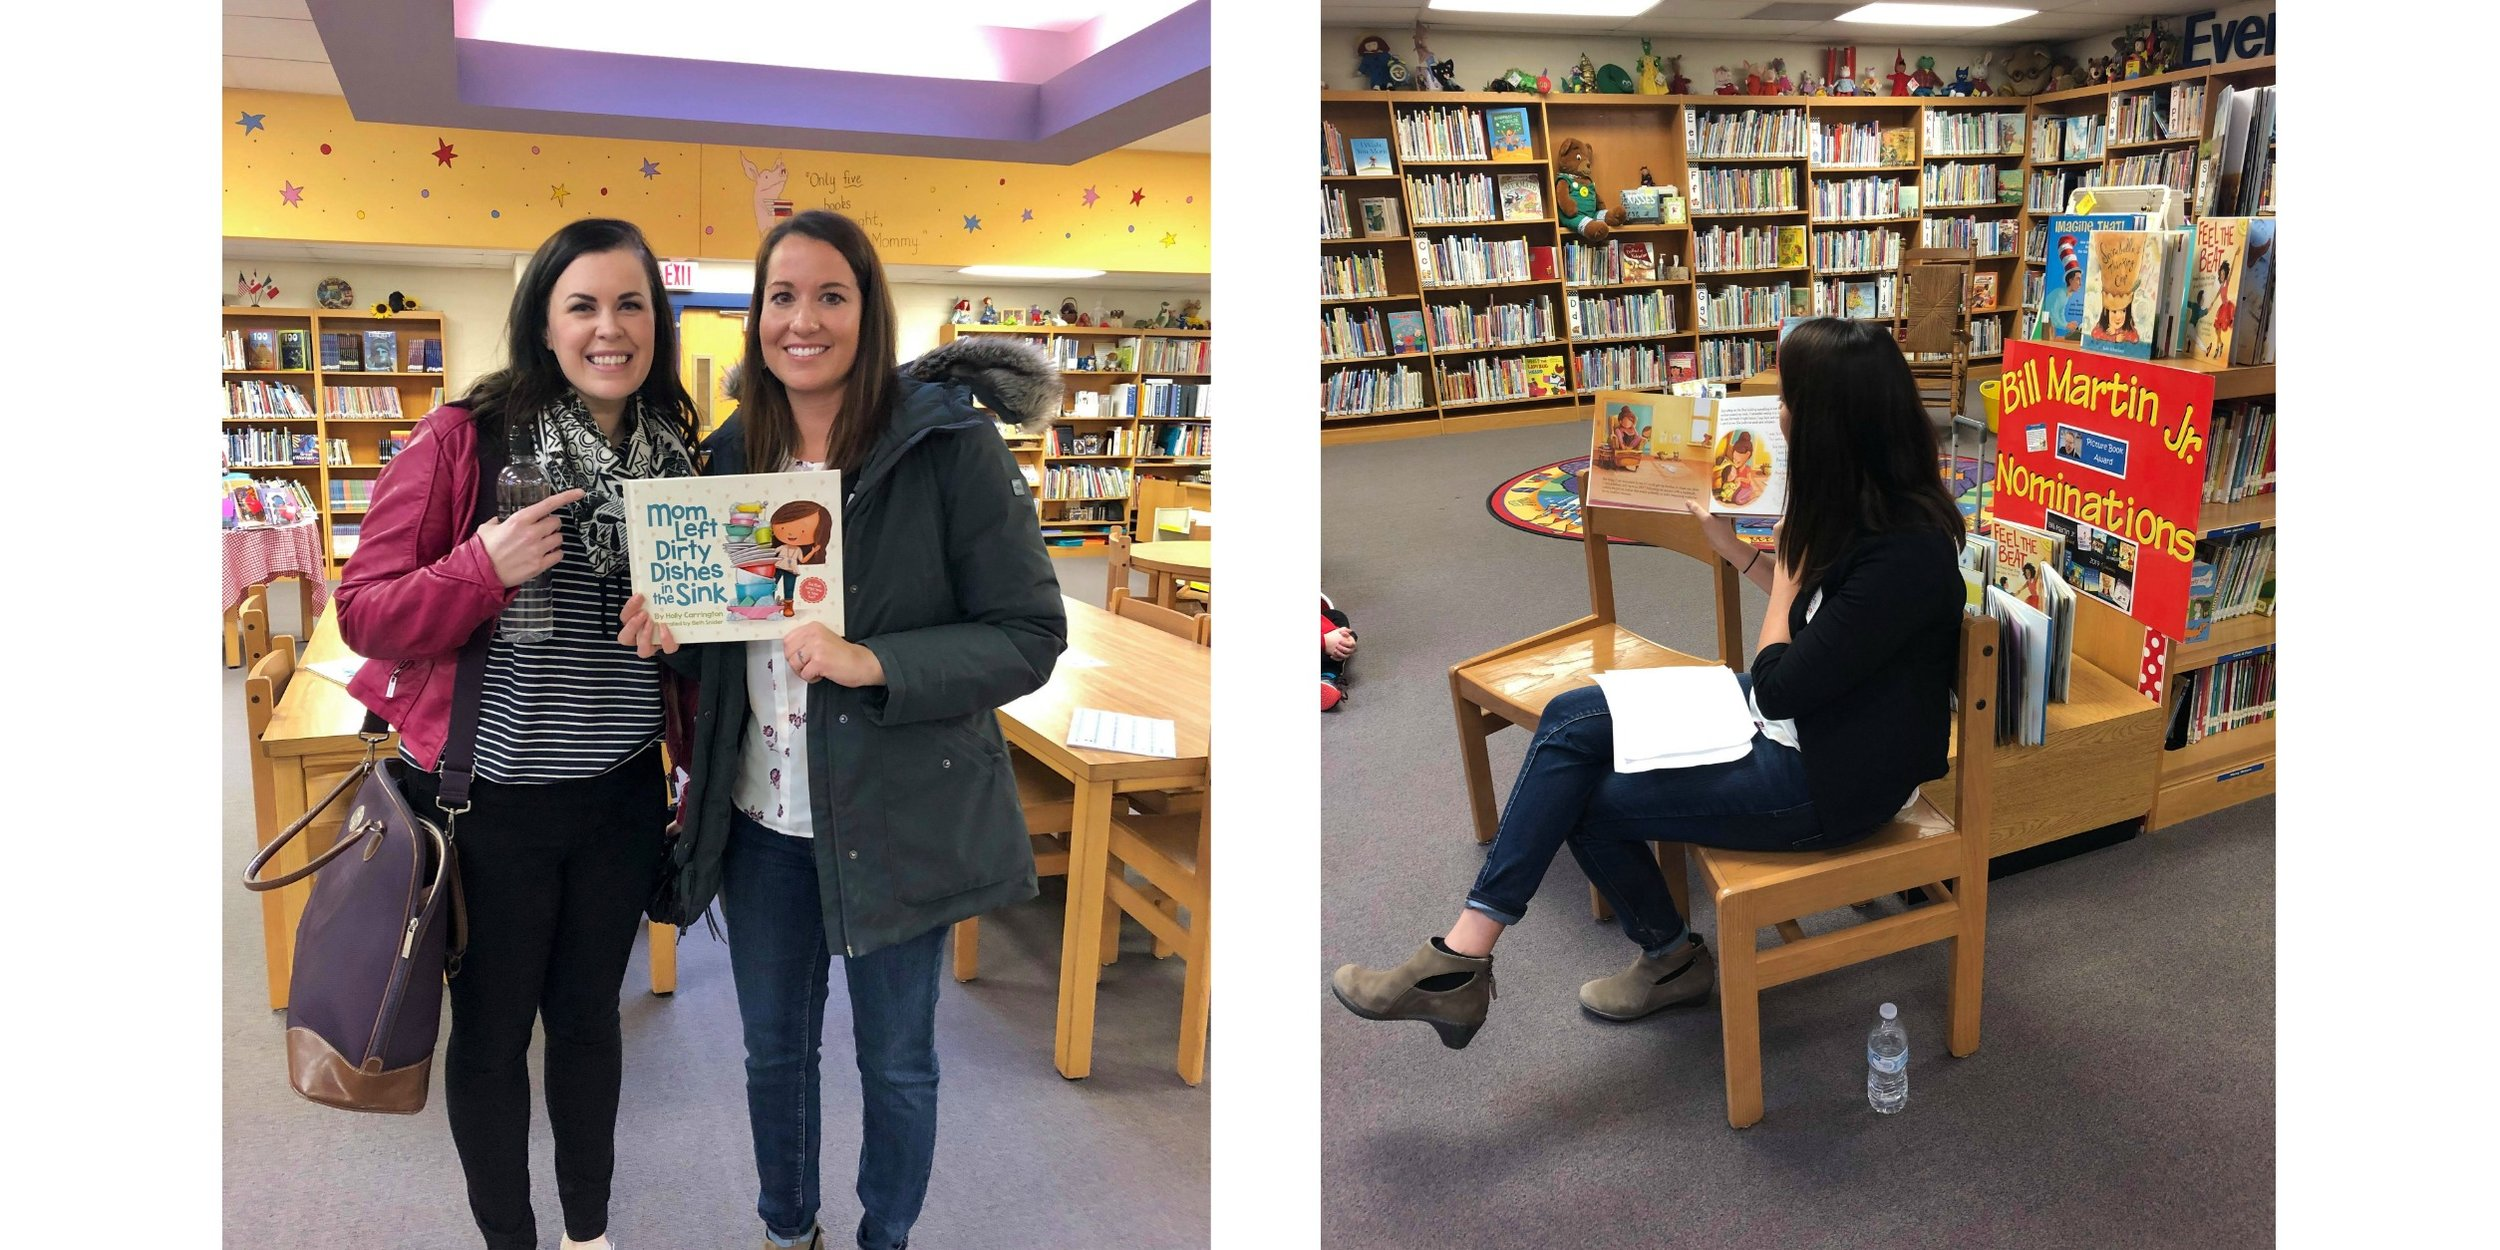 Holly and Beth's presentation is appealing to all elementary age groups! They share about their process in fun ways that inspire kids to read, write and illustrate their own stories.